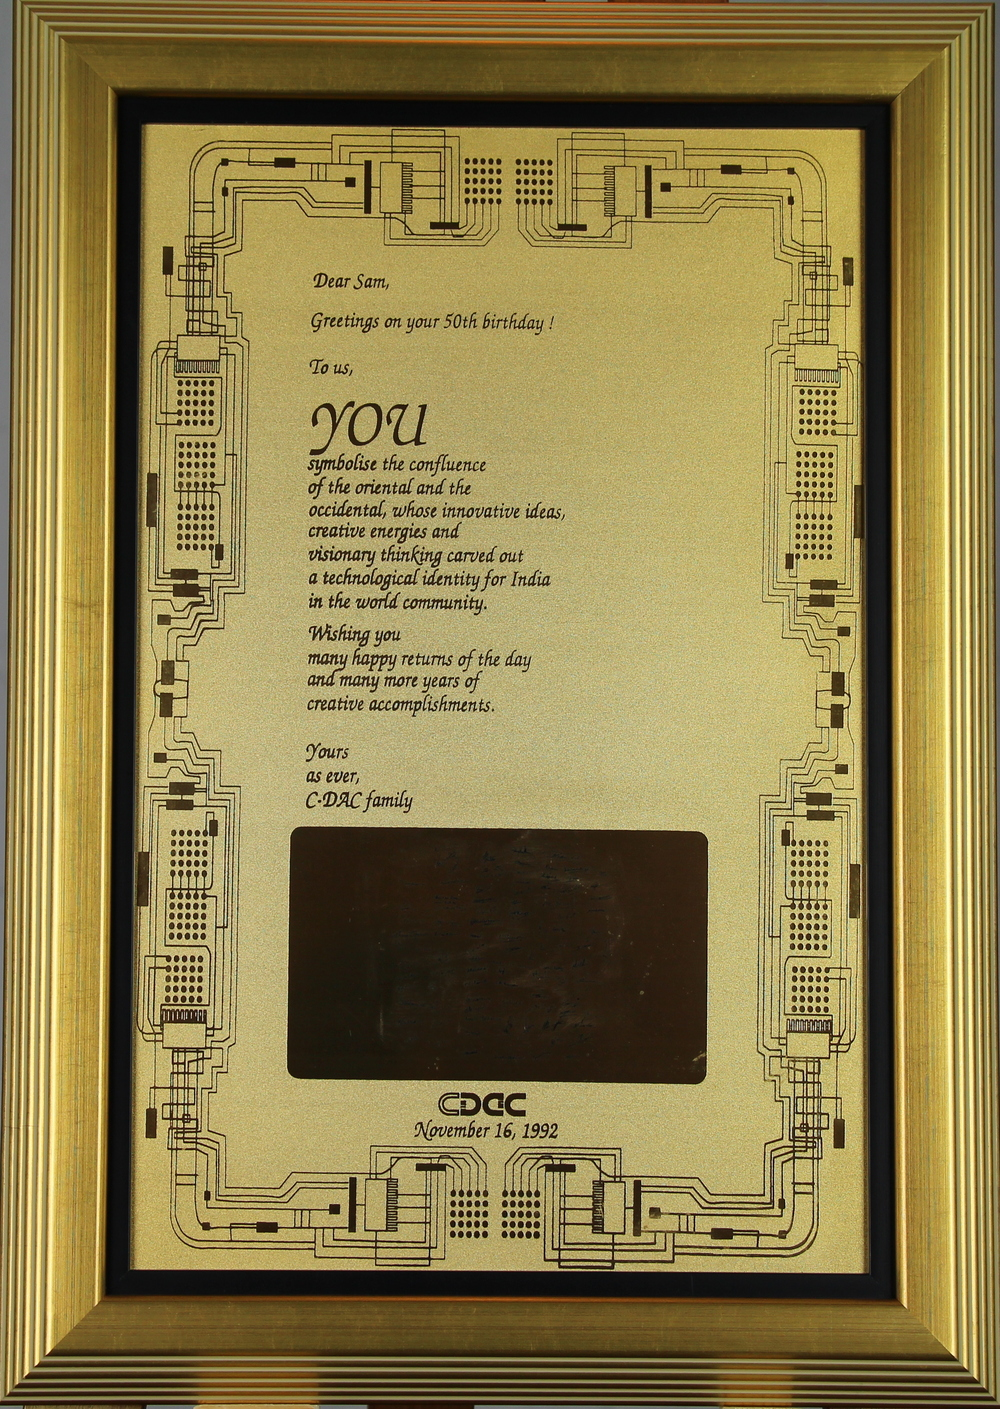 50th Birthday Present from C –DAC Family, 1992